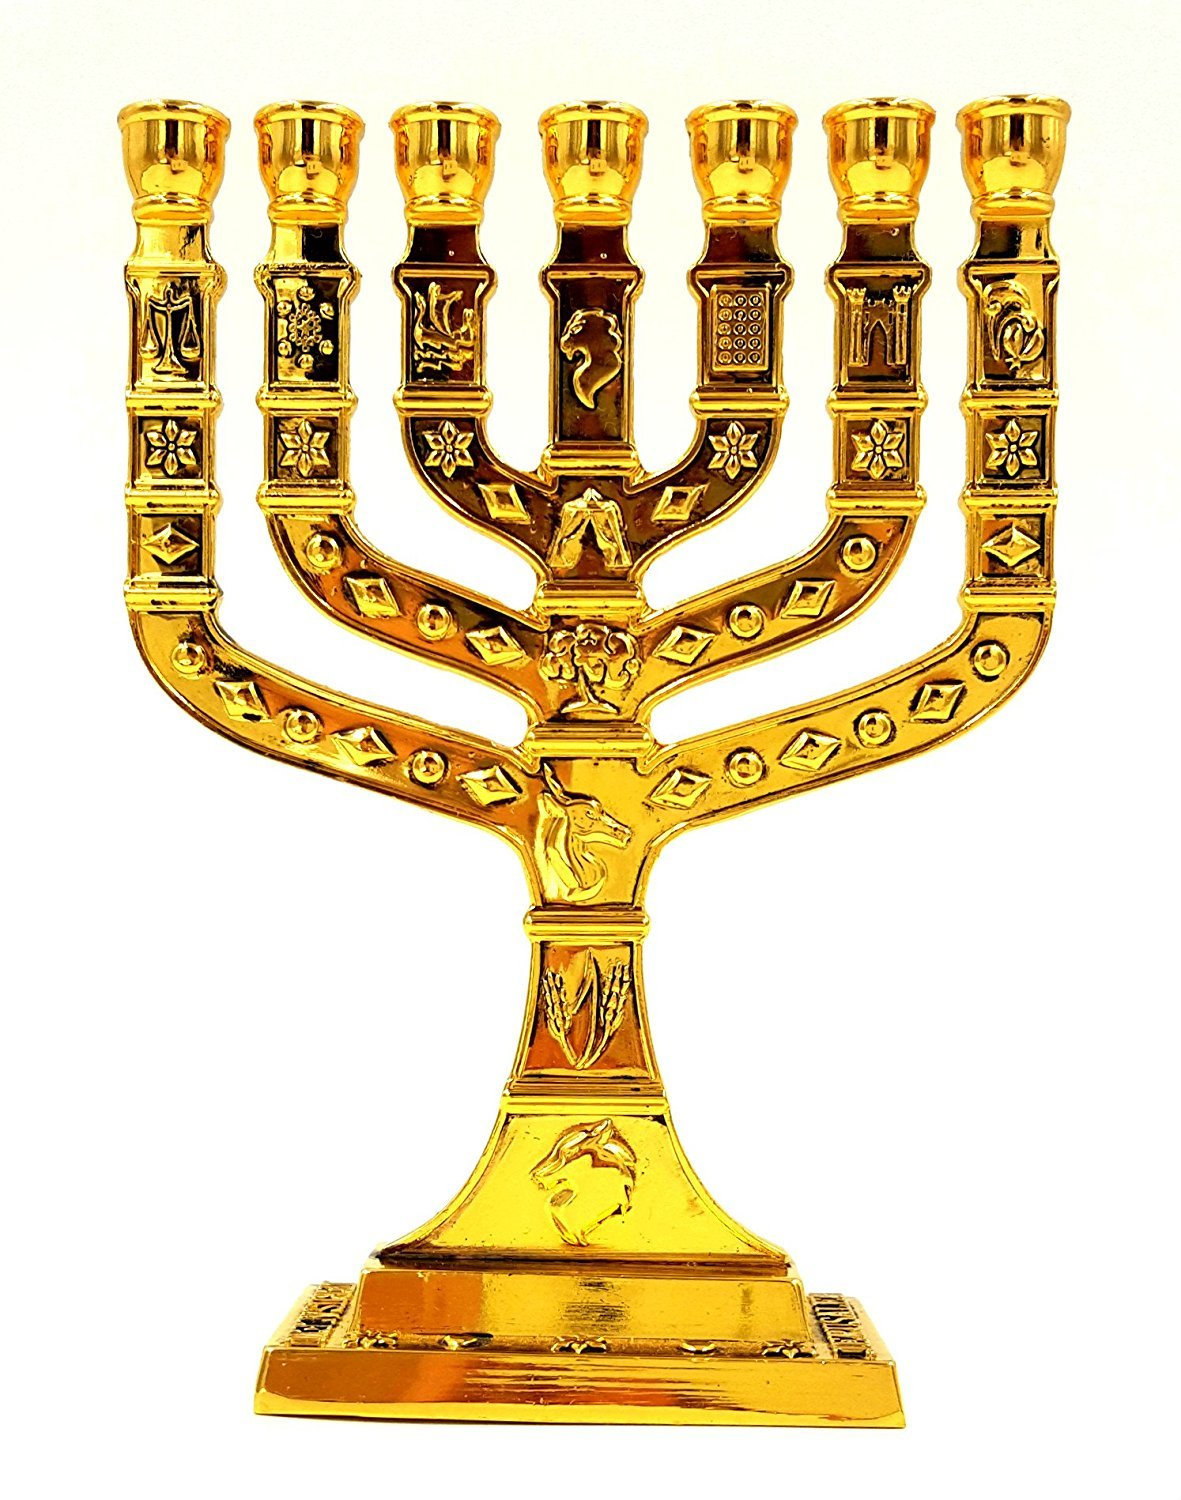 Cheap jewish candle menorah find jewish candle menorah deals on get quotations 12 tribes of israel jewish 7 branch gold temple menorah candle holder 5 inch tall biocorpaavc Image collections